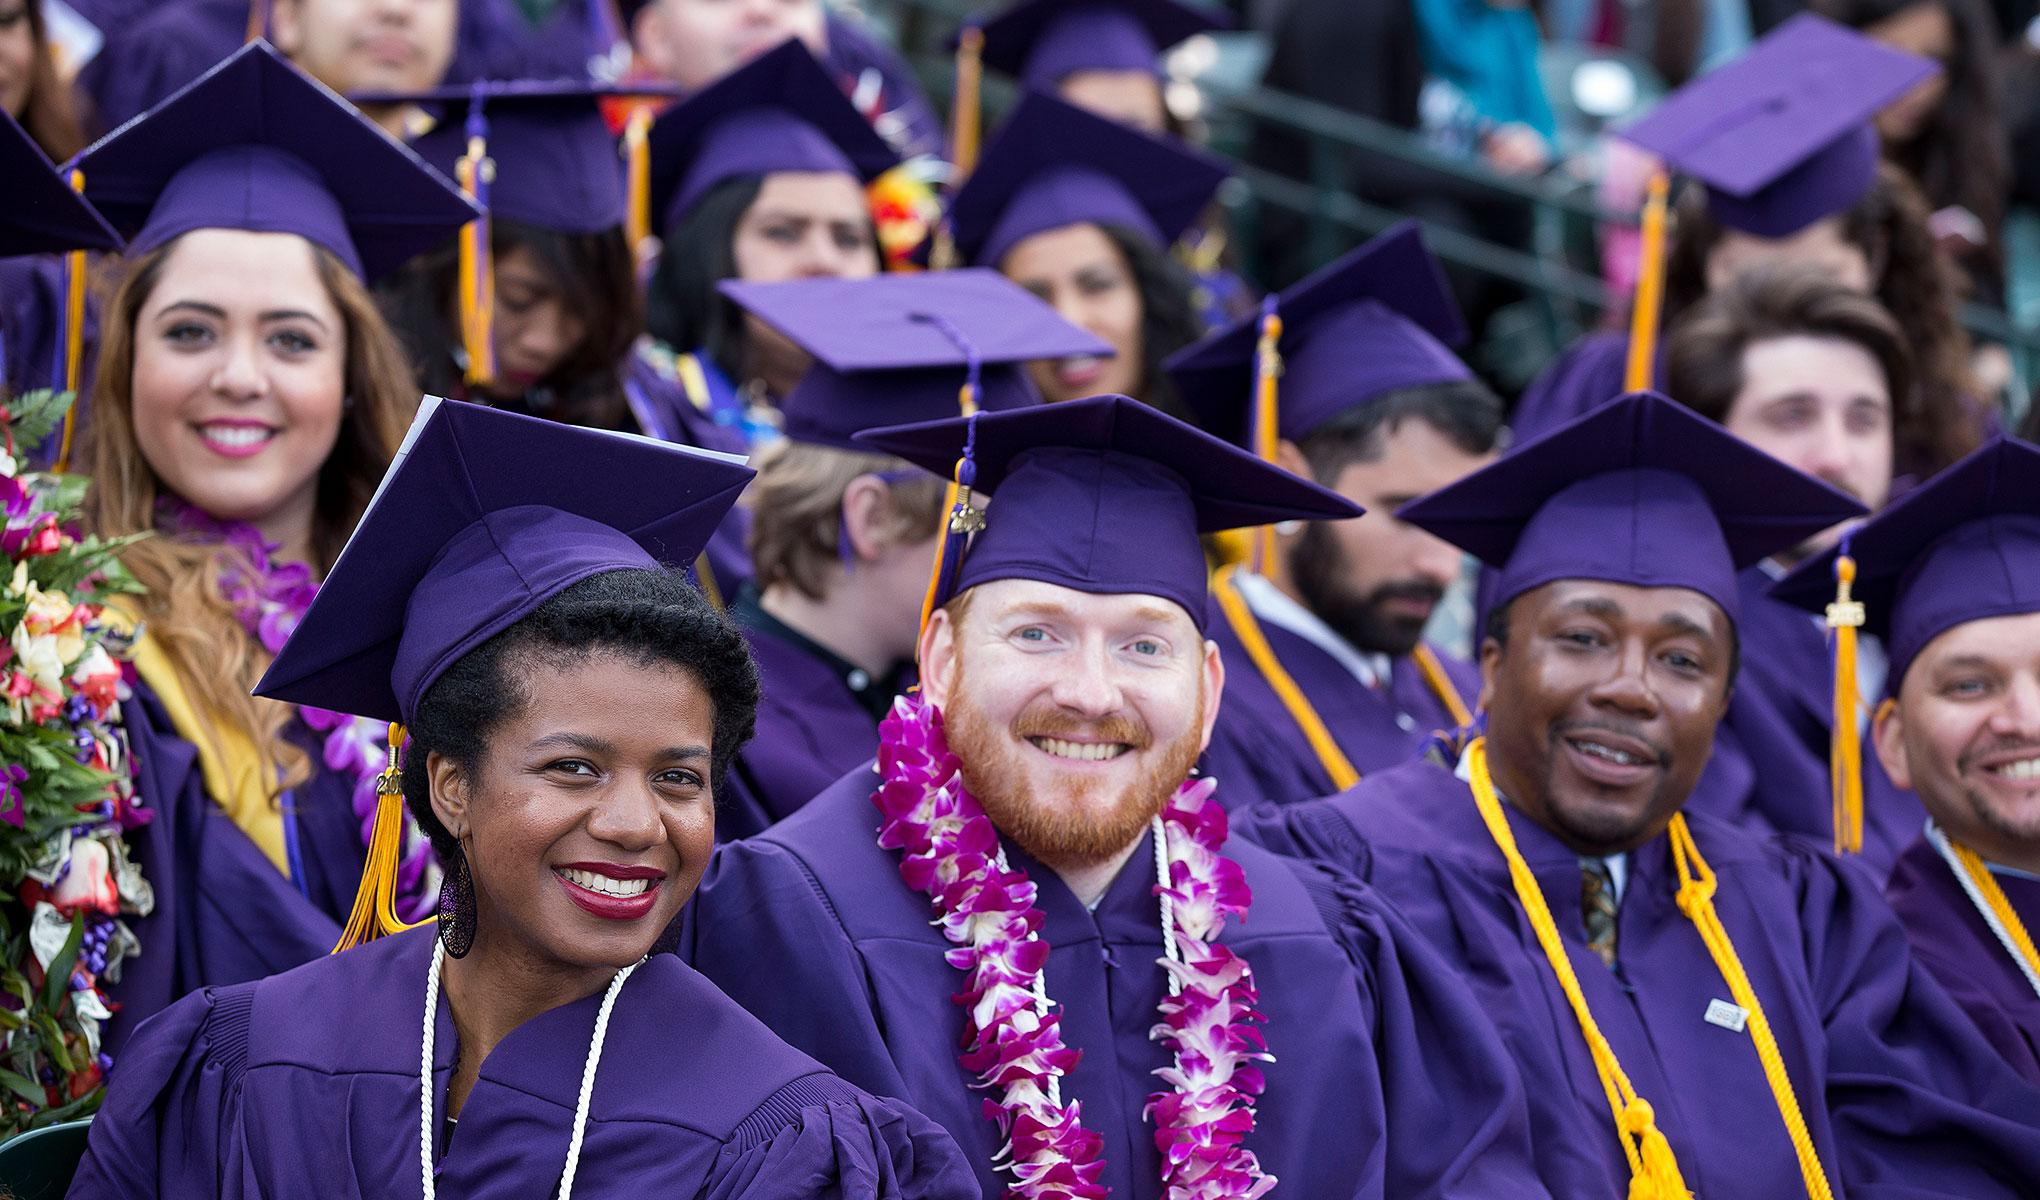 A photo of San Francisco State graduates in academic regalia.